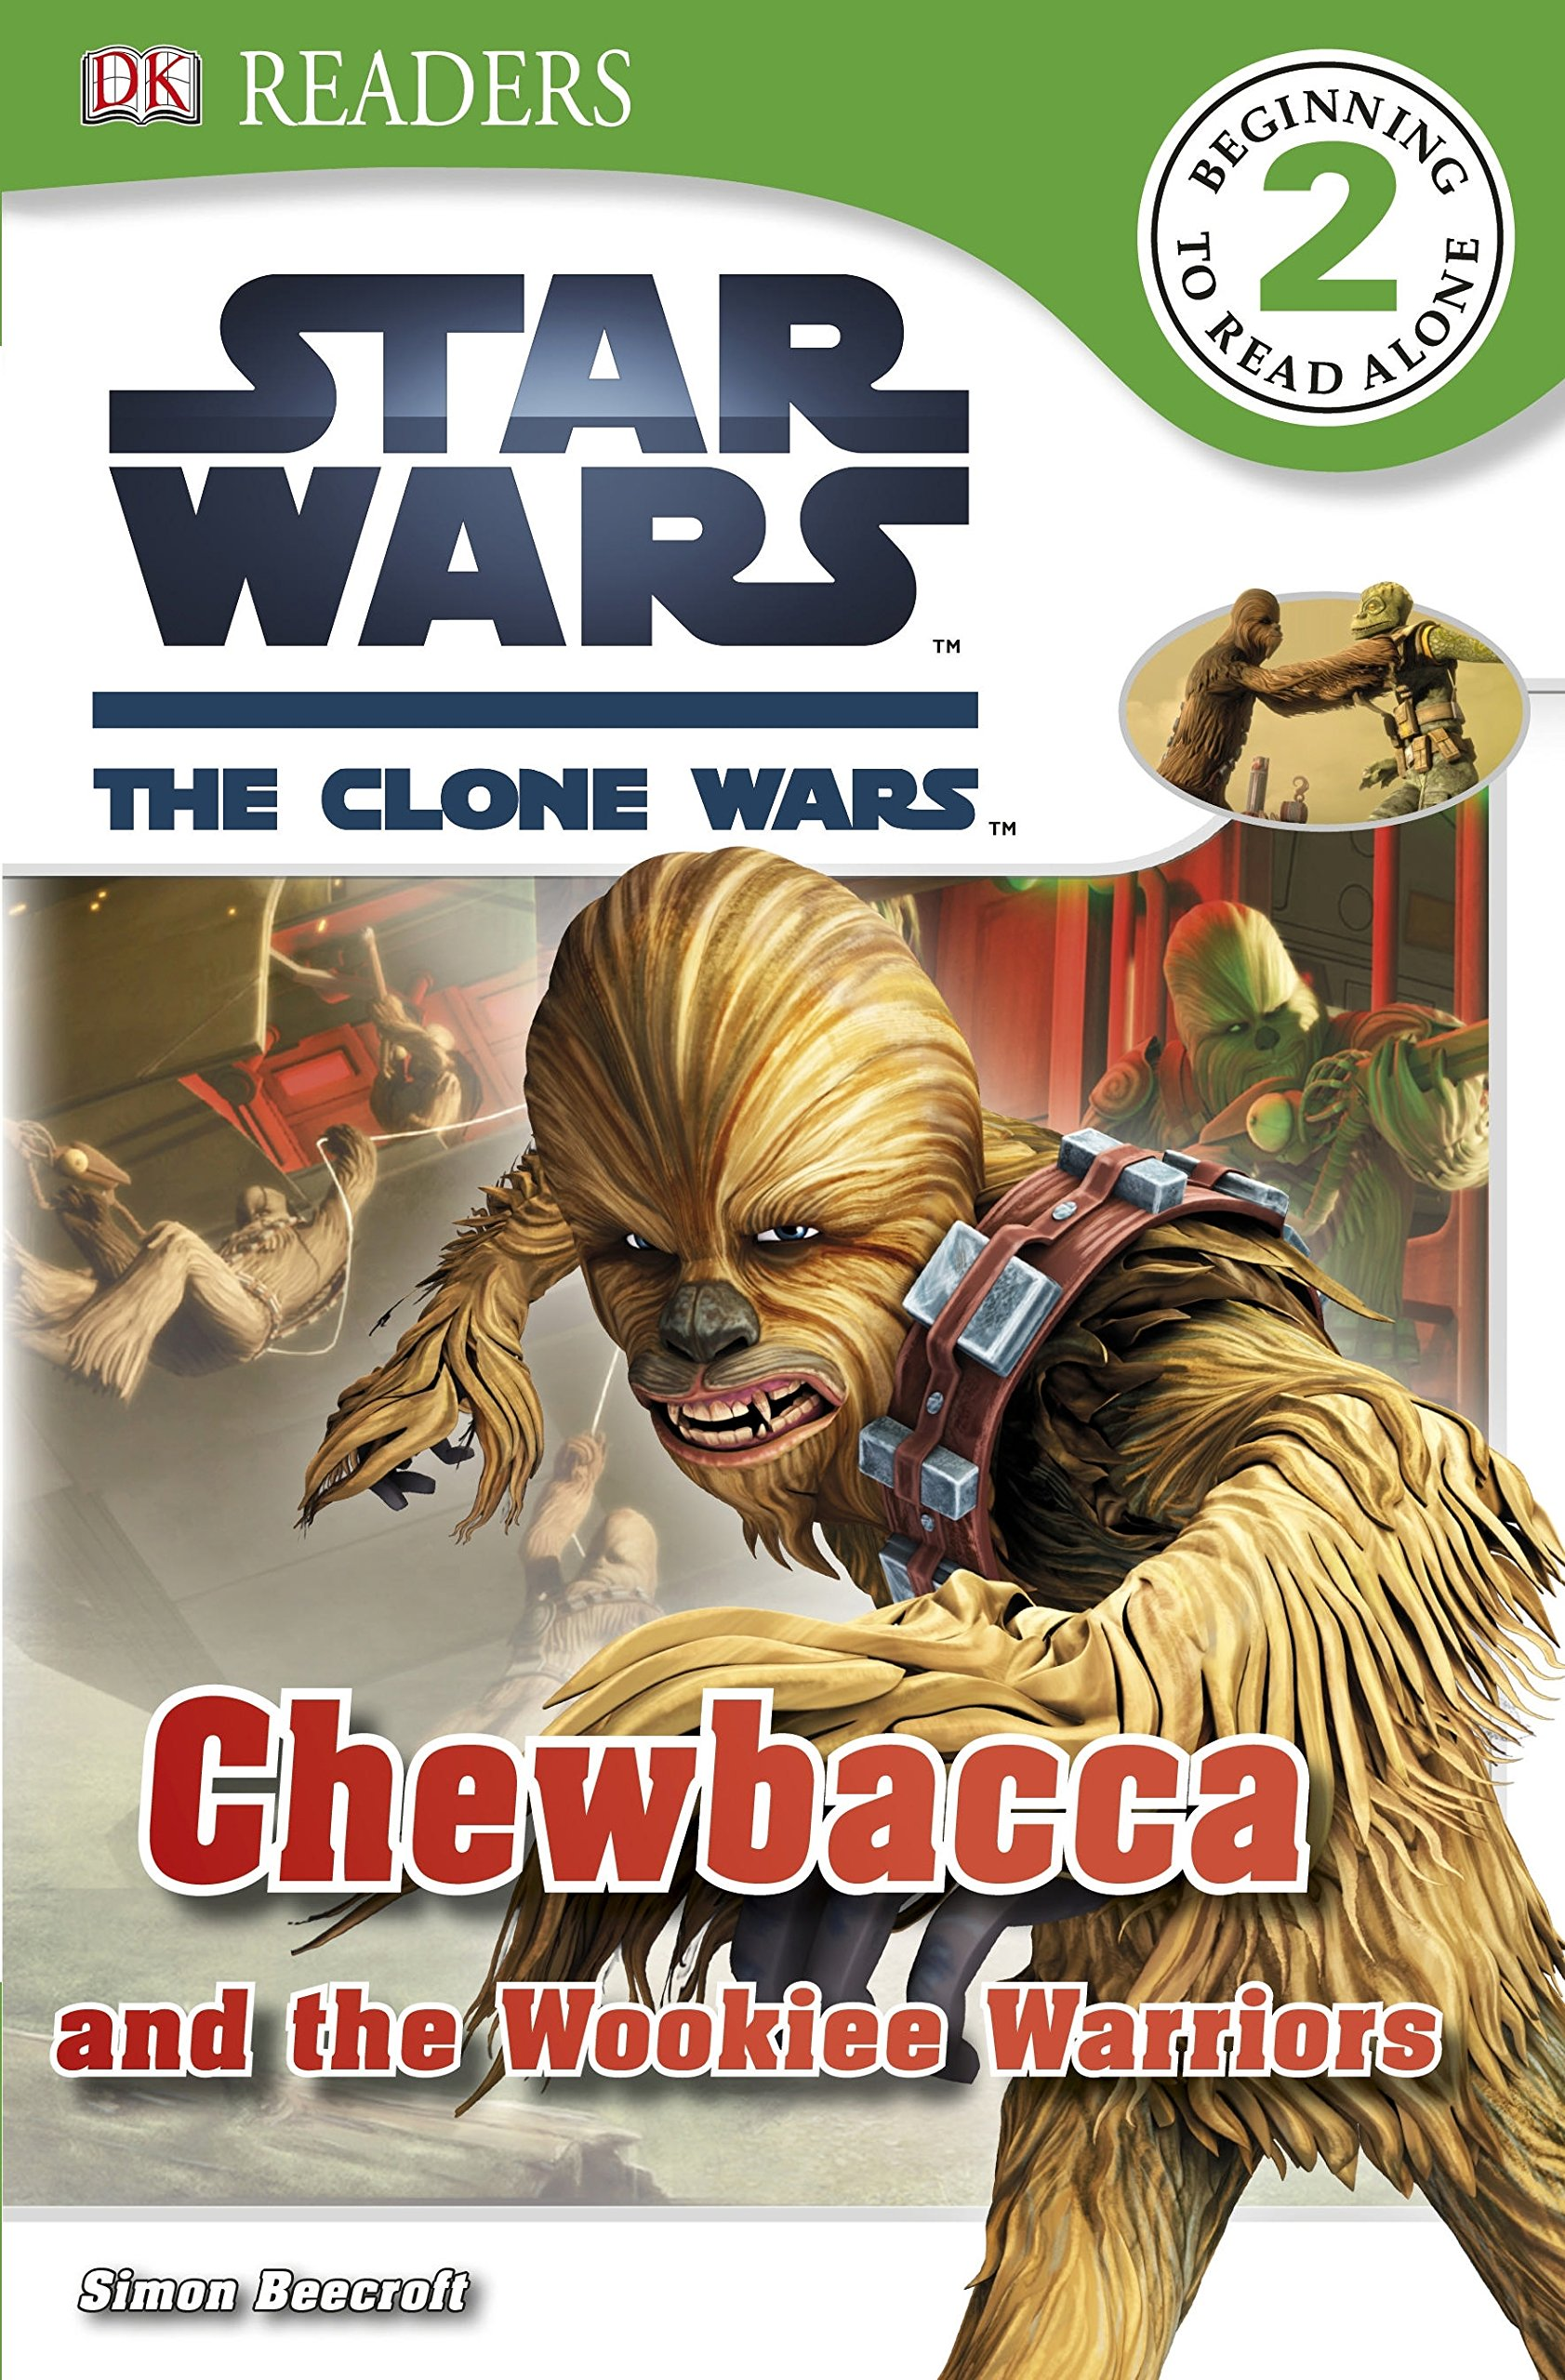 Star Wars The Clone Wars: Chewbacca and the Wookiee Warriors